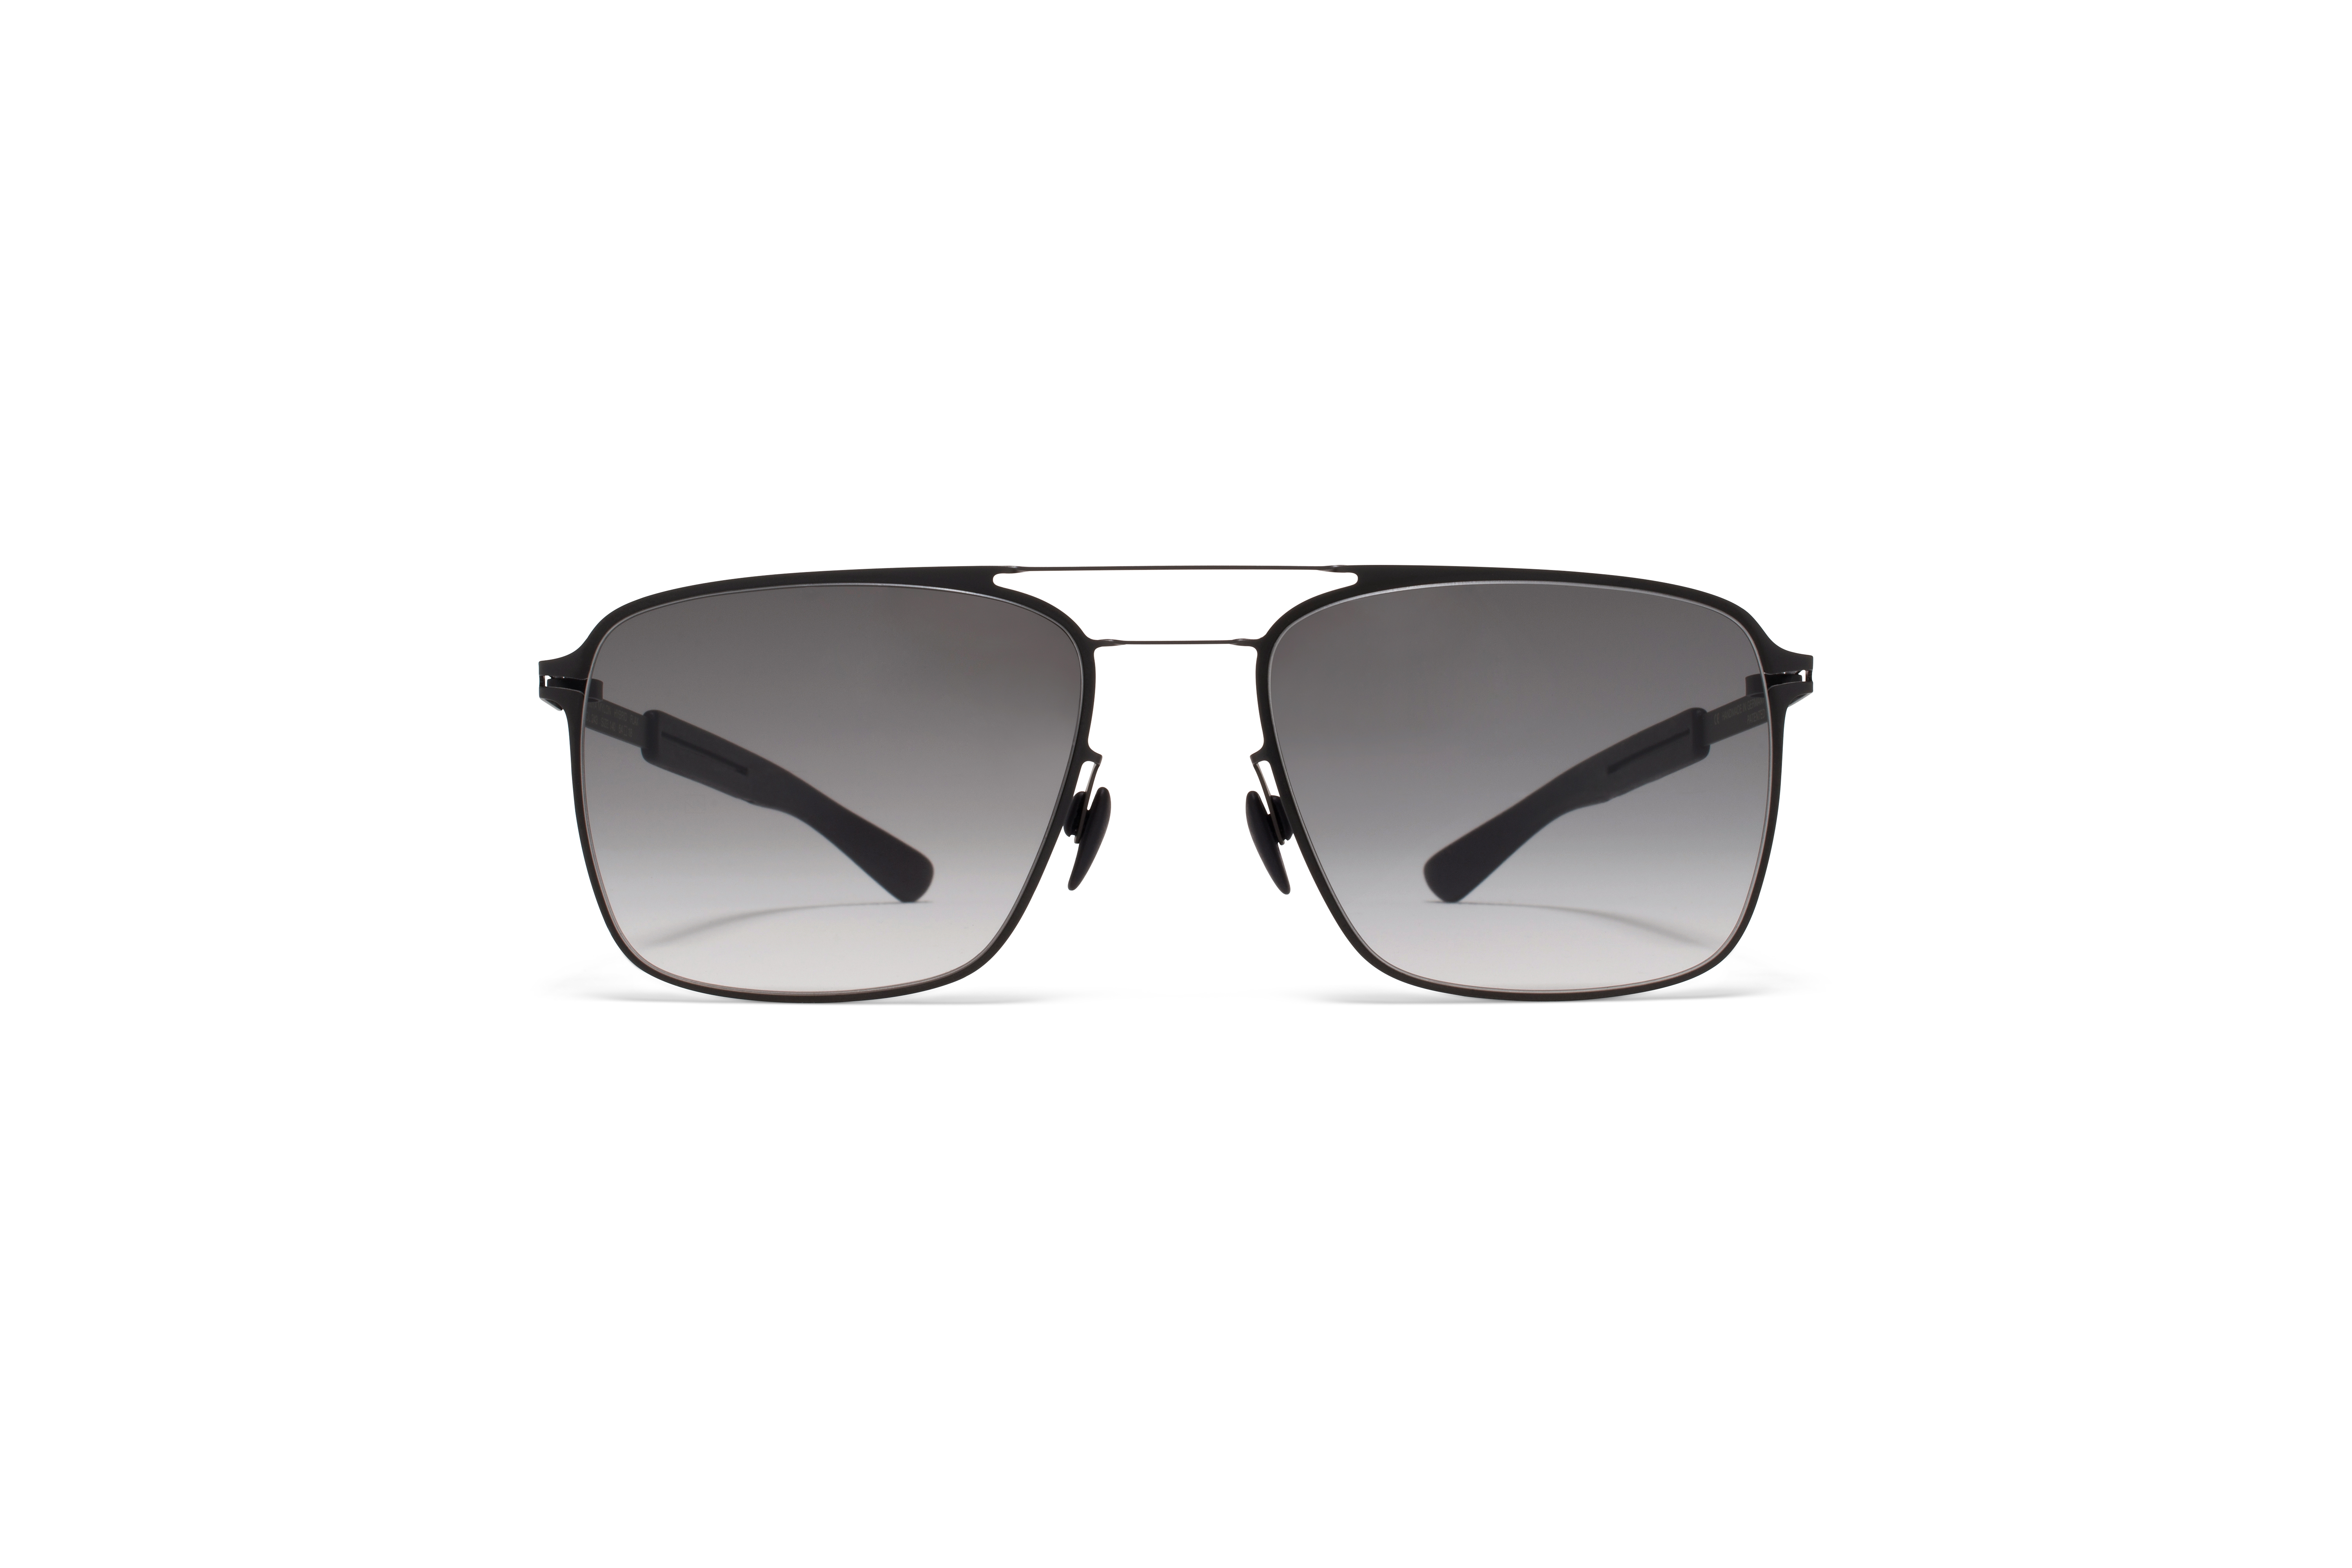 MYKITA Mylon Hybrid Sun Flax Mh1 Black Pitch Black5936ae1c5fce0